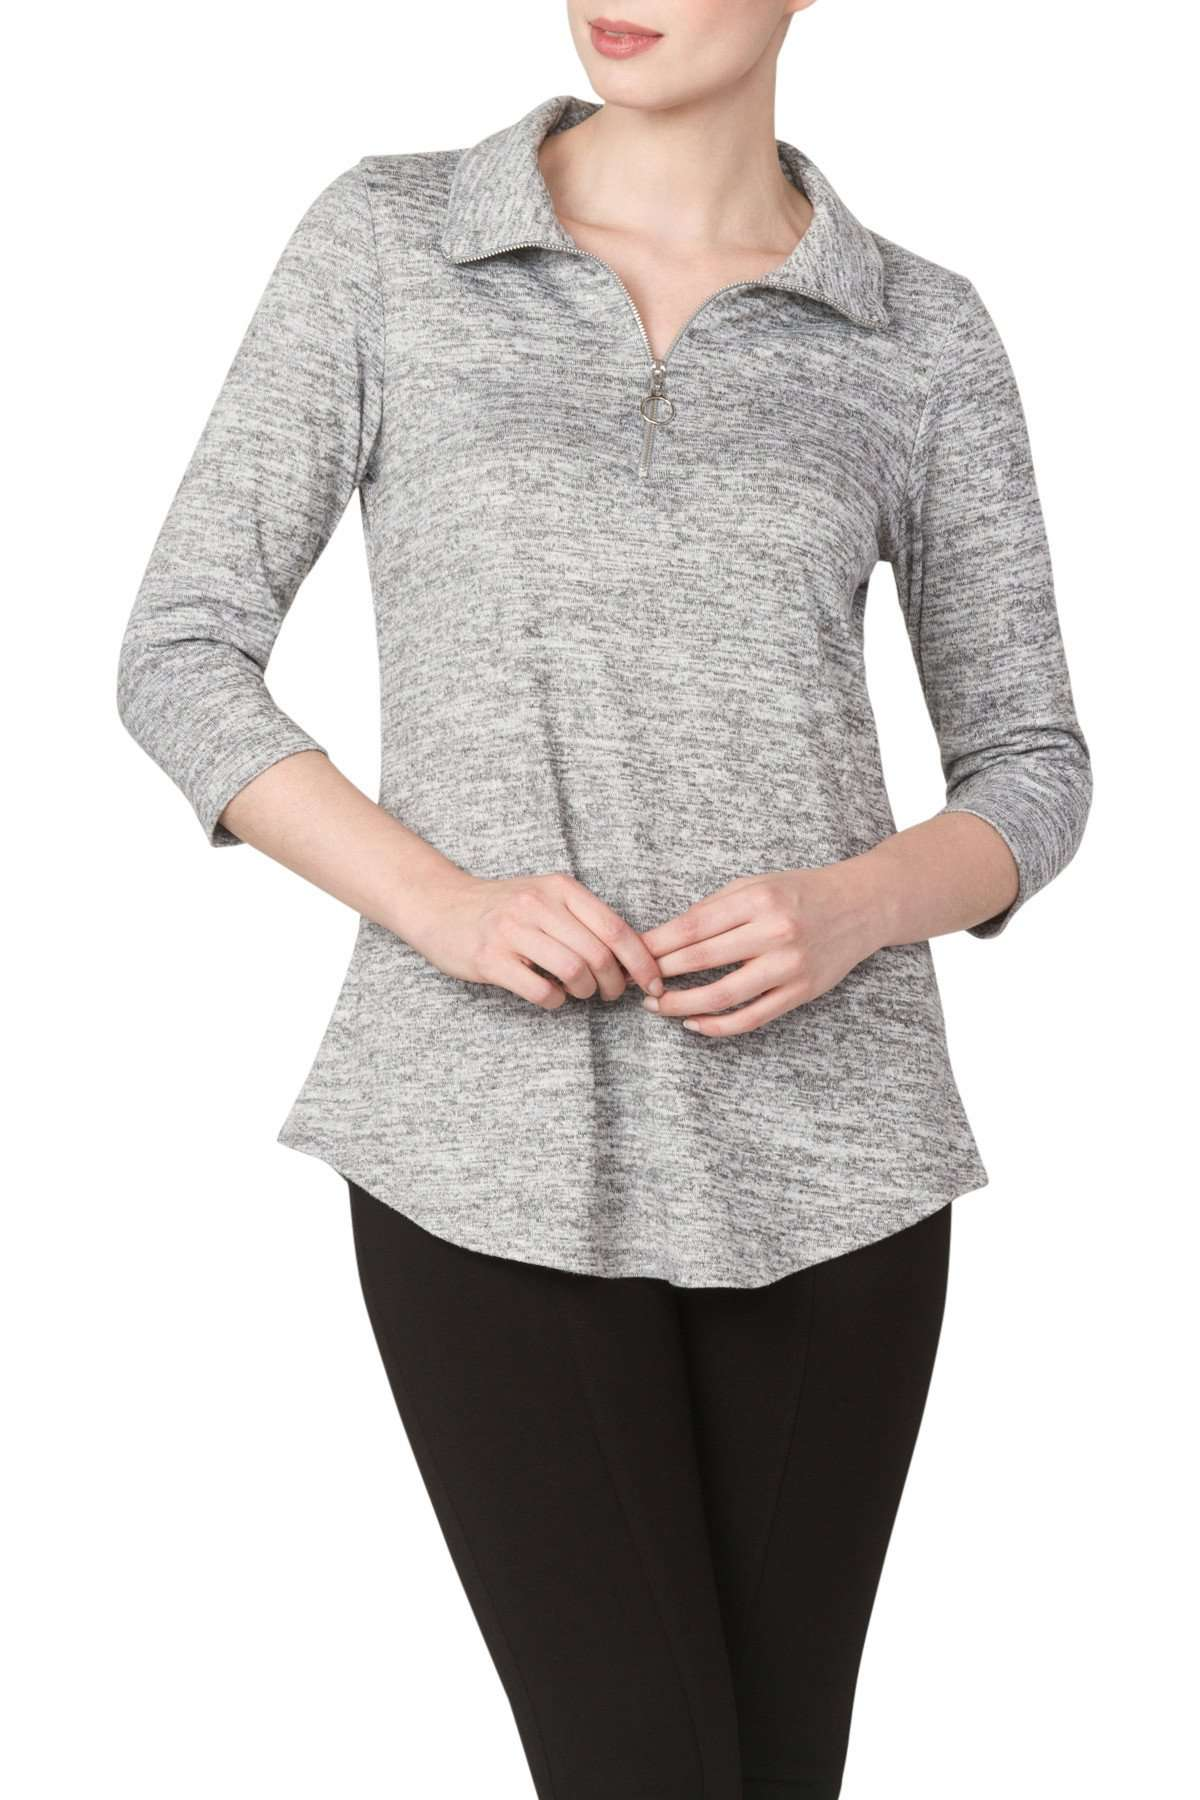 Women's Silver Grey Sweater Now 50 Off - Made In Canada - Yvonne Marie - Yvonne Marie